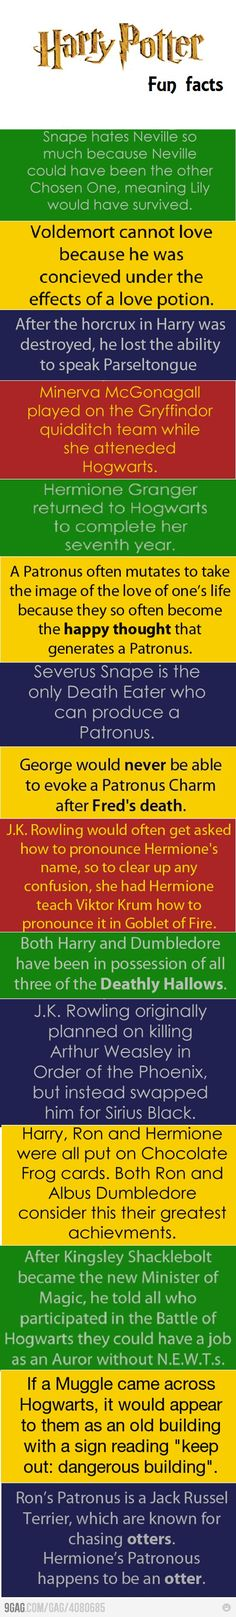 I can never get enough of these fun HP facts..its a syndrome haha